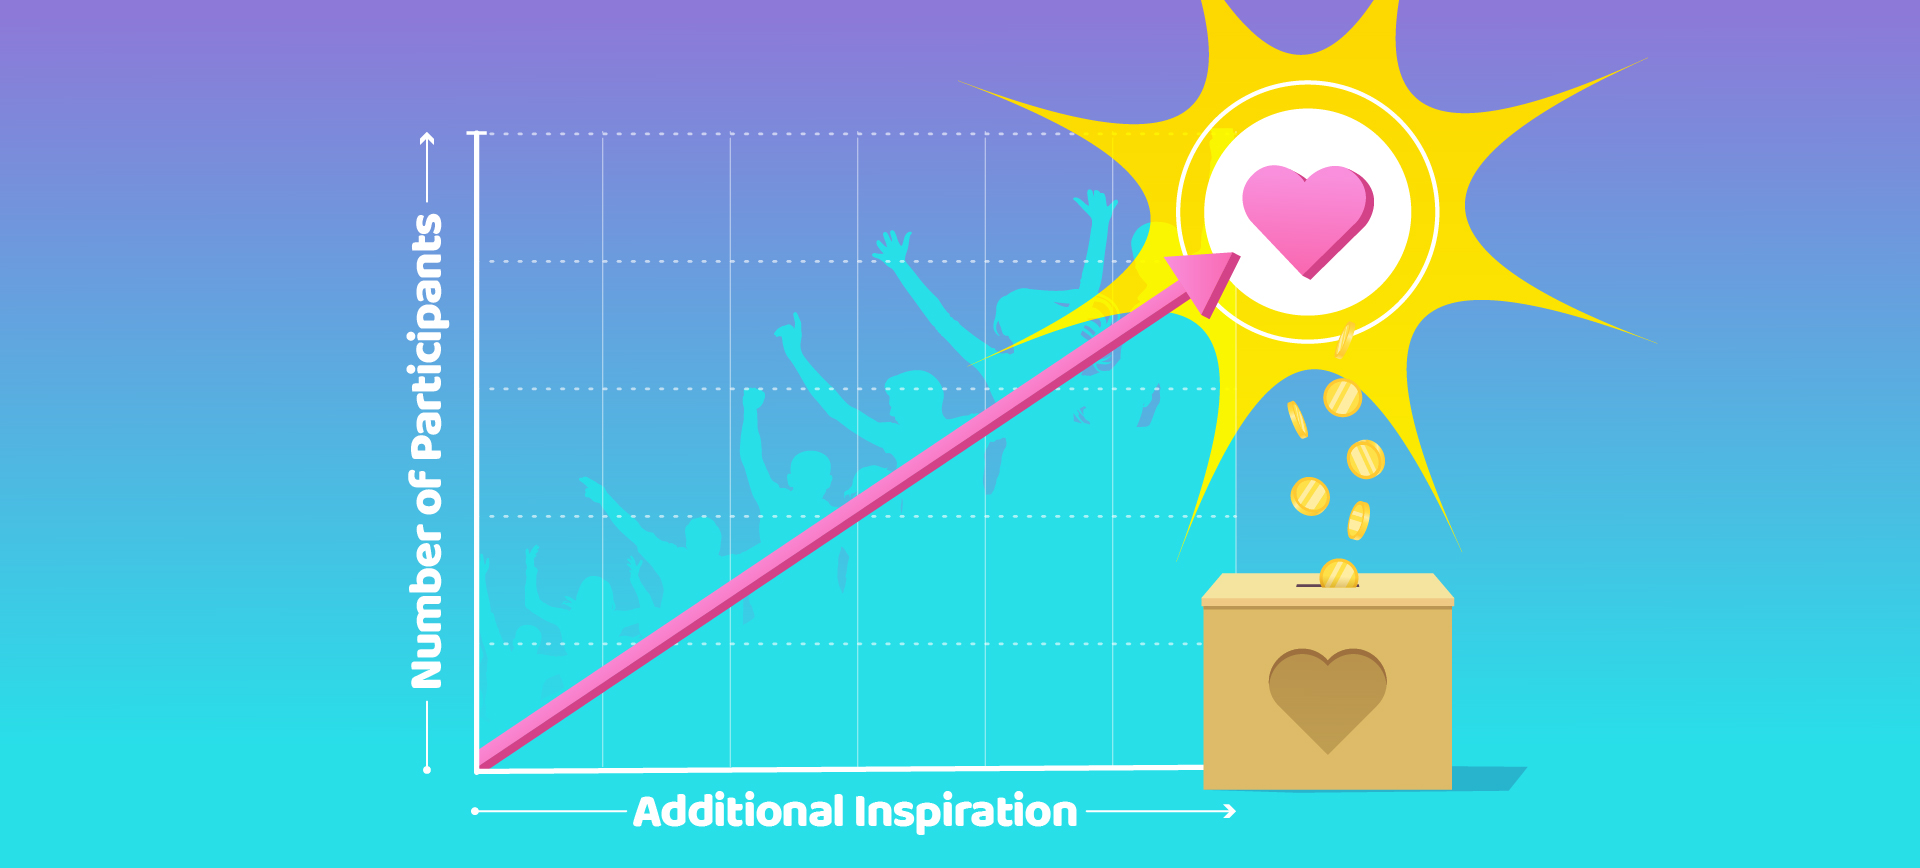 Banner - Arrow pointing upward to a heart symbol